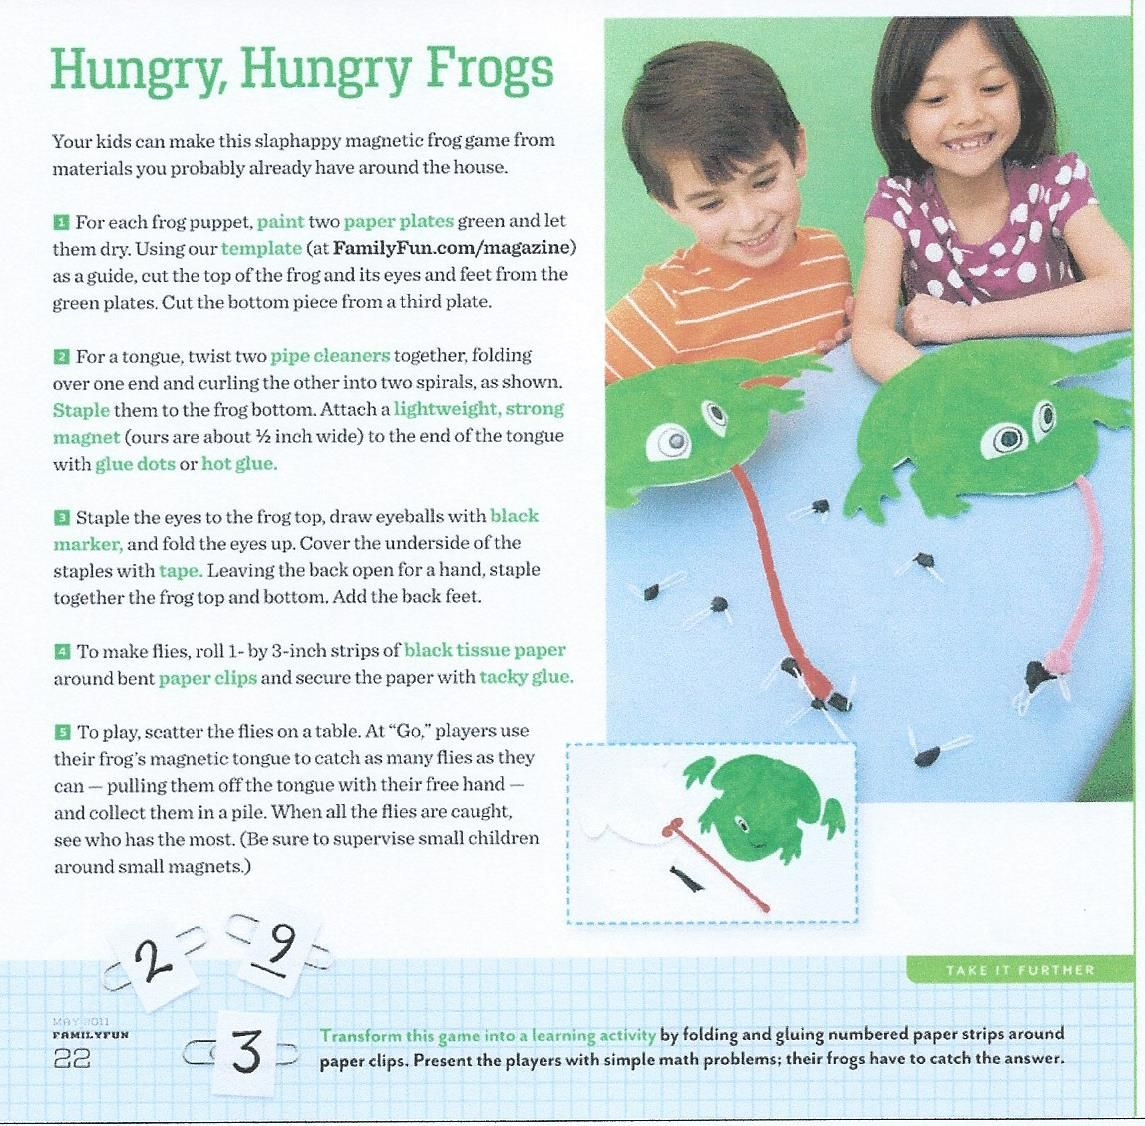 Hungry Hungry Frogs Game For Kids